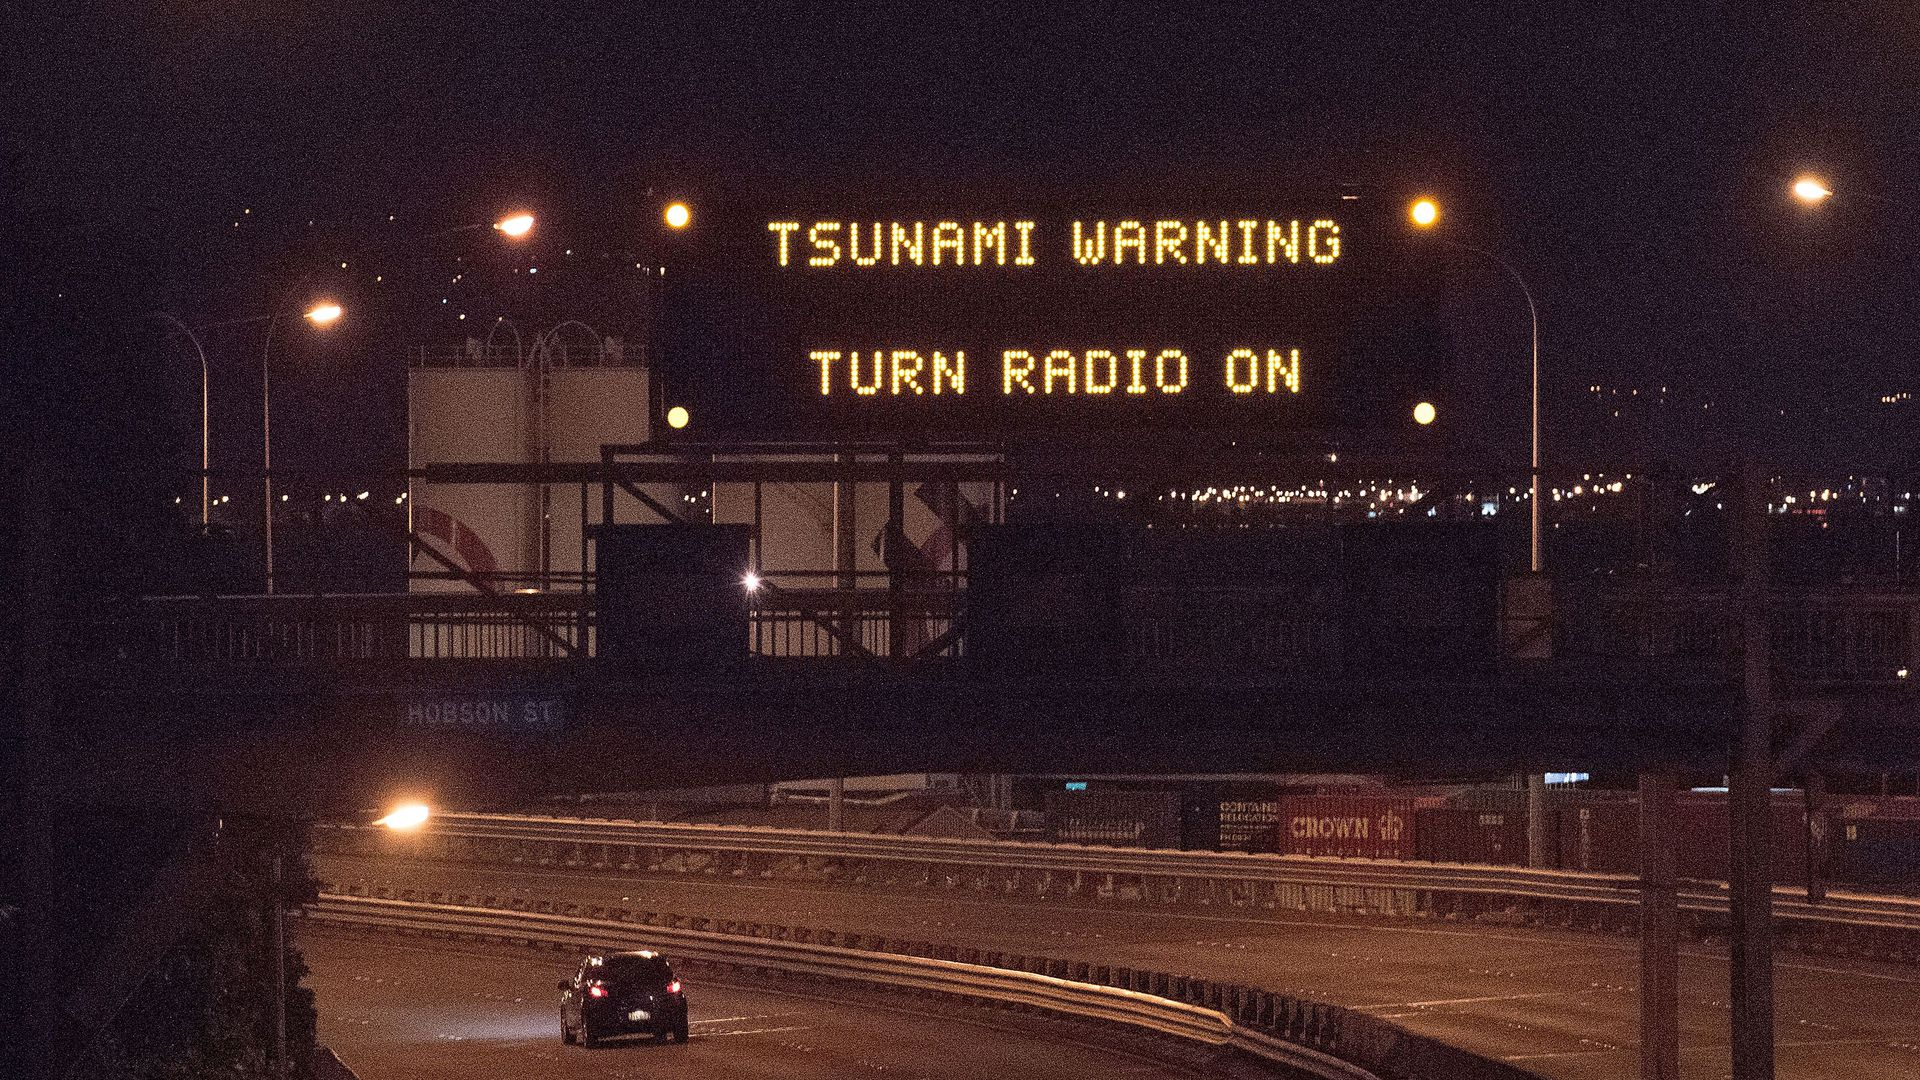 Tsunami warning.